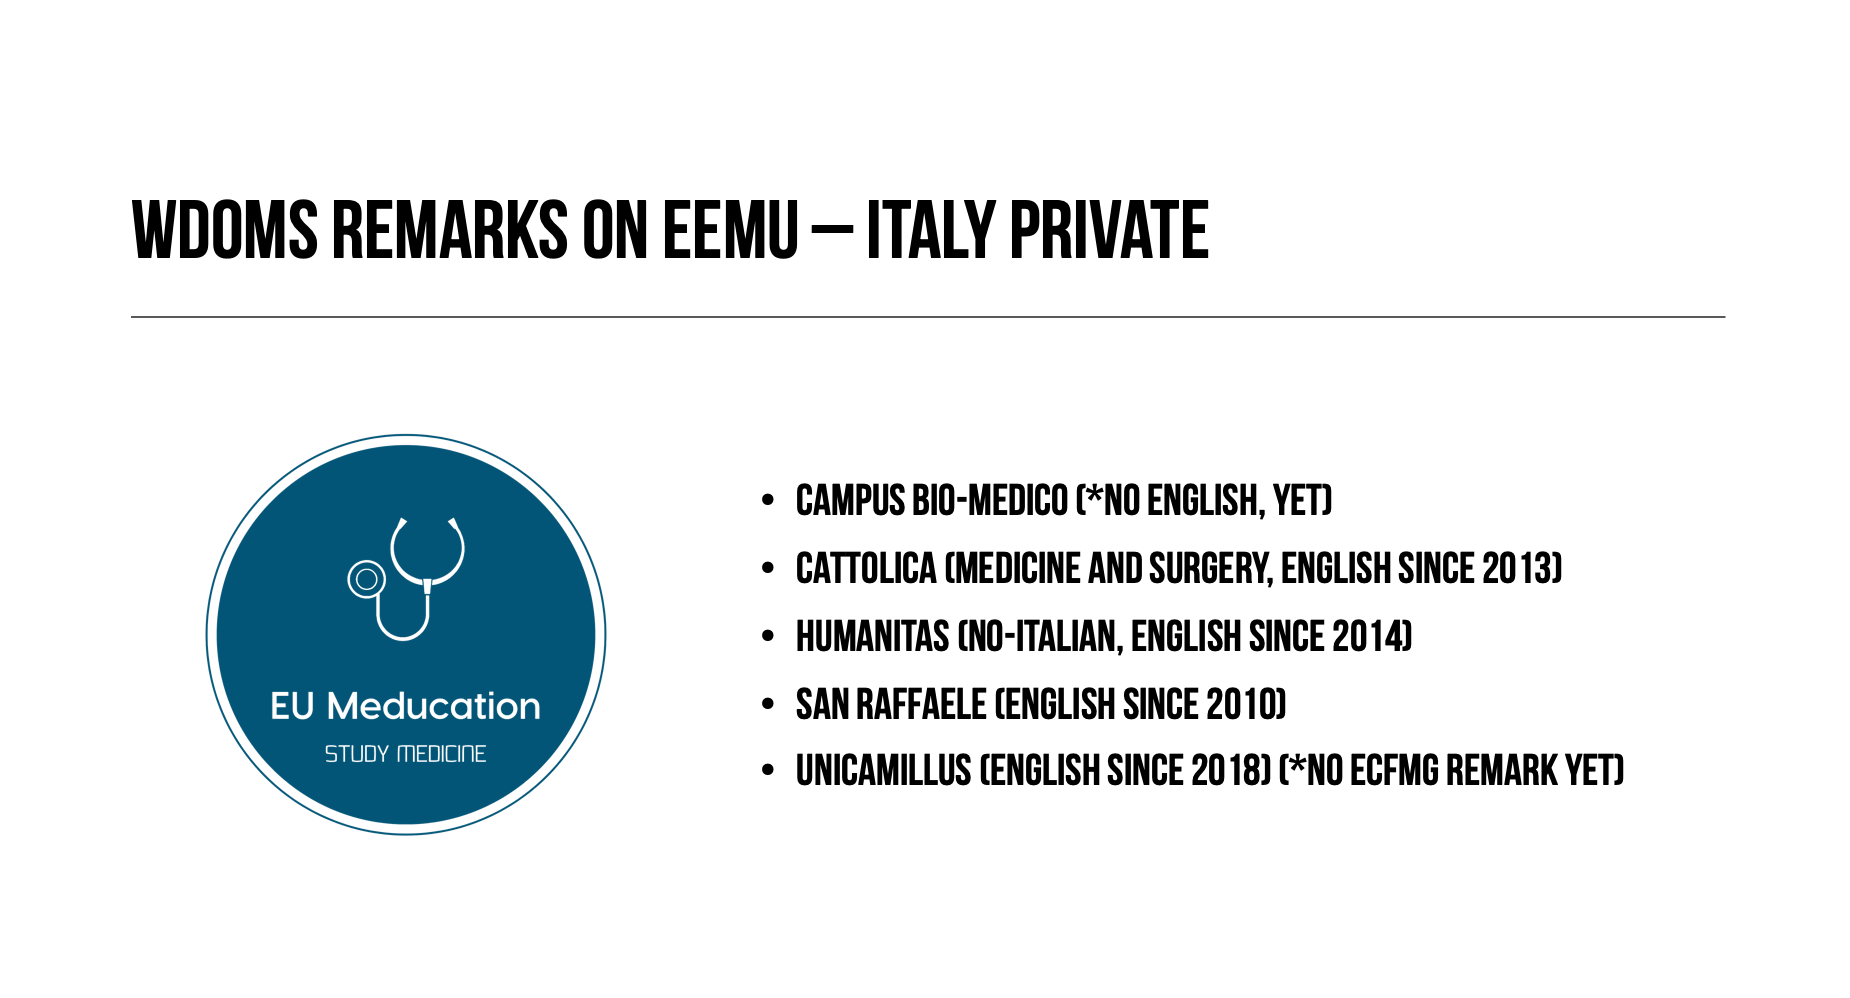 WDOMS-Italy-Private